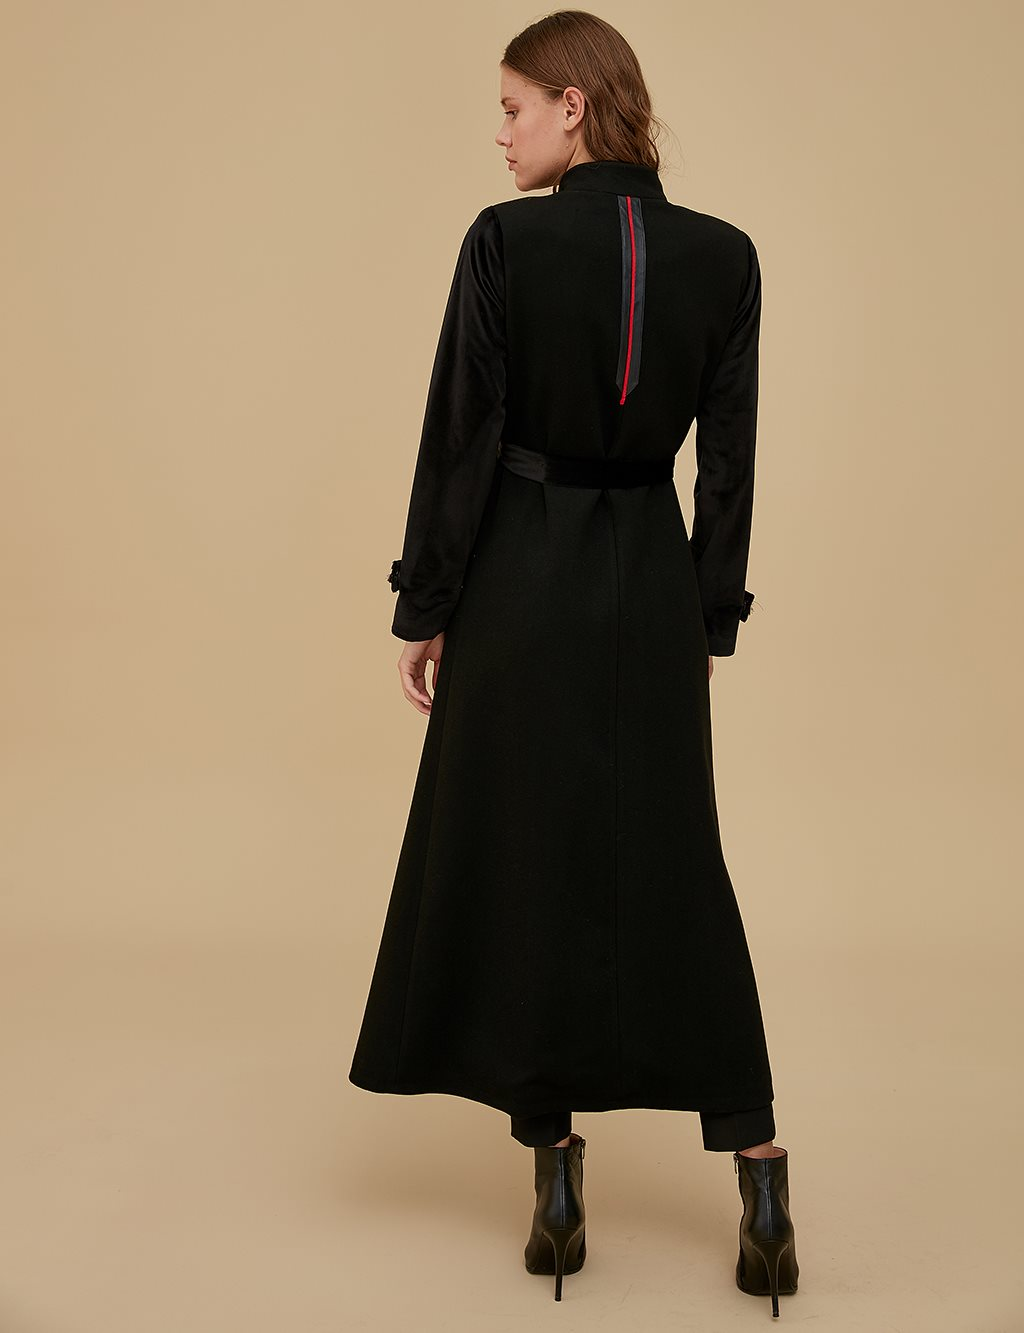 Coat With Leather Detailed Belt A9 18003 Black